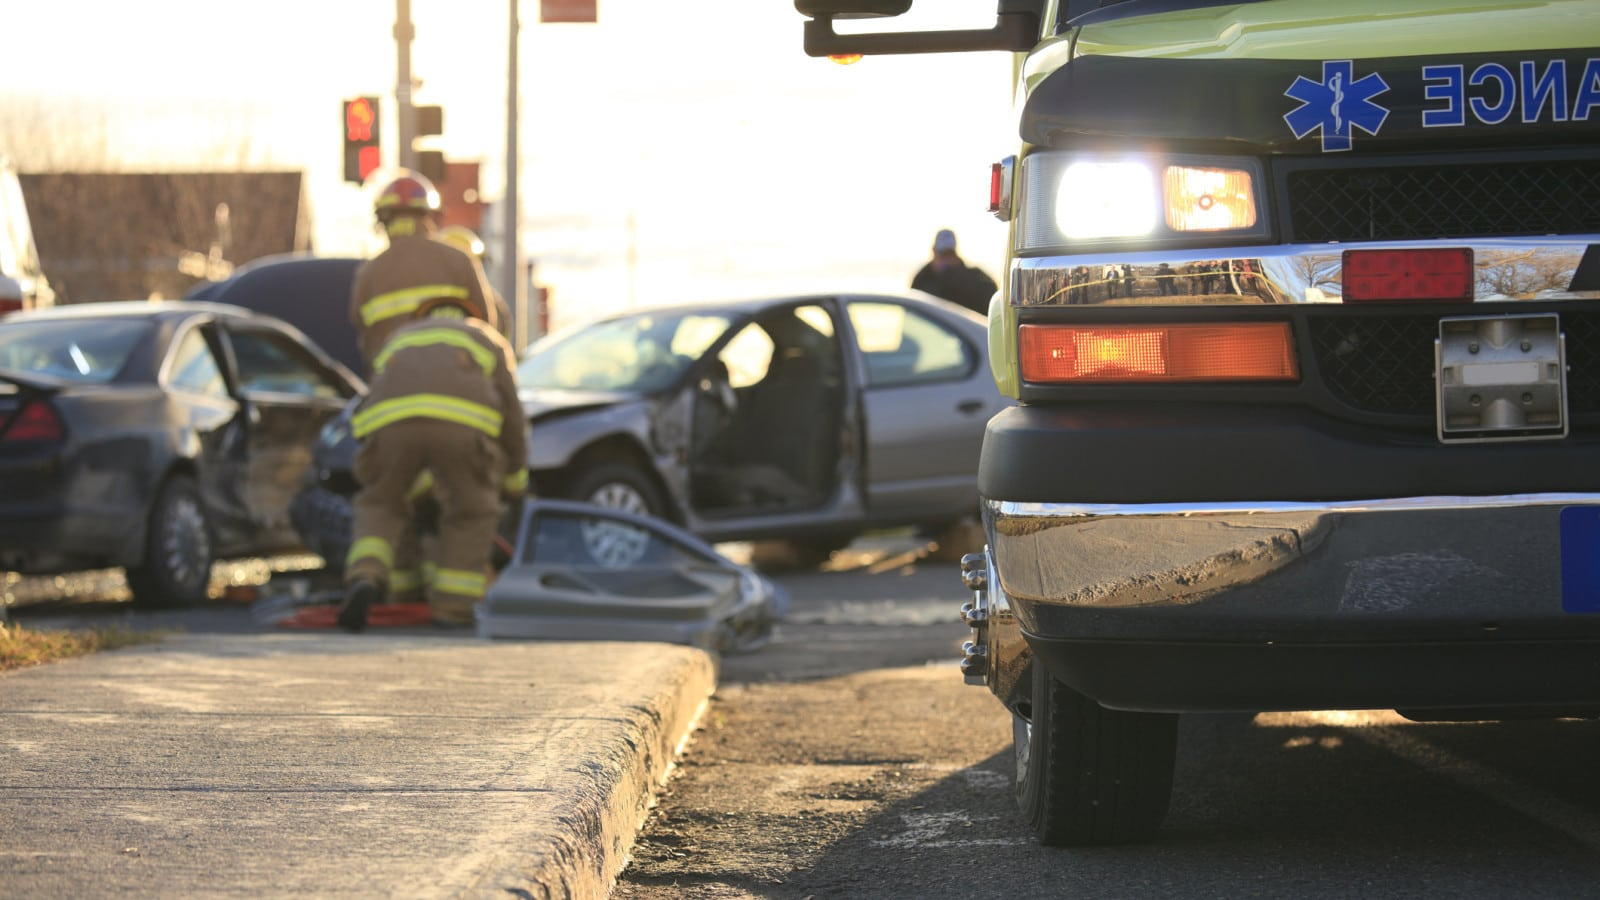 Ambulance At A Car Accident Scene Stock Photo